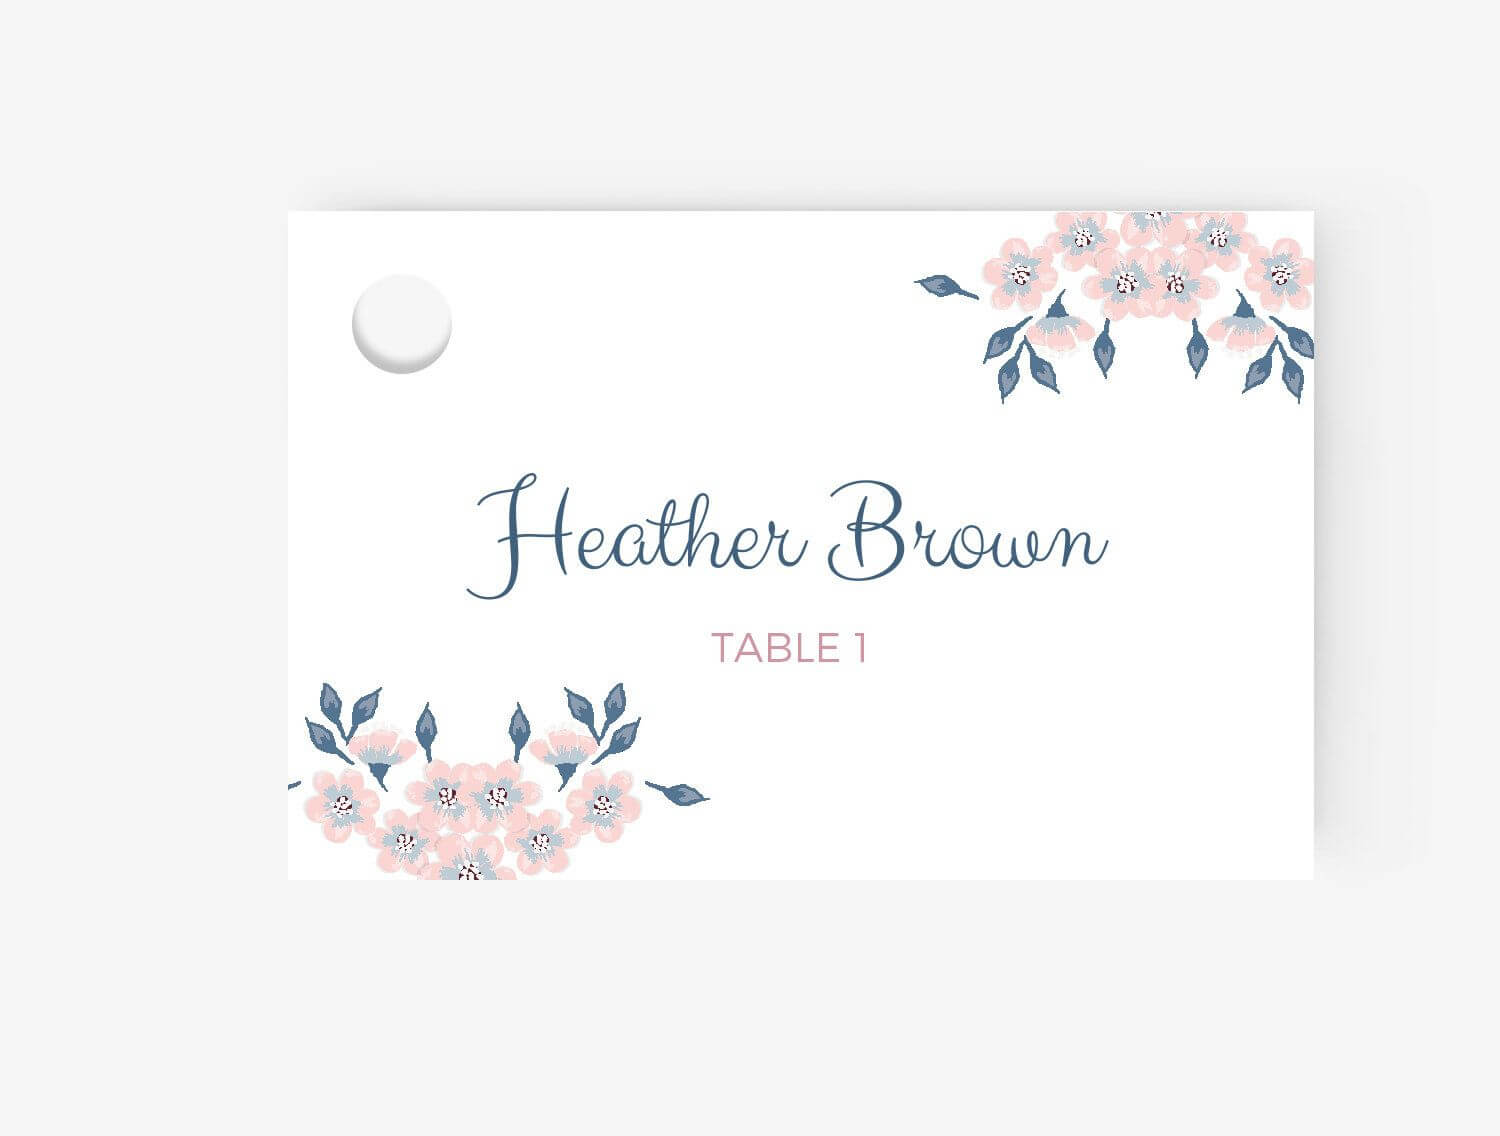 011 Place Cards Template Word Ideas Marvelous Name Table Regarding Wedding Place Card Template Free Word